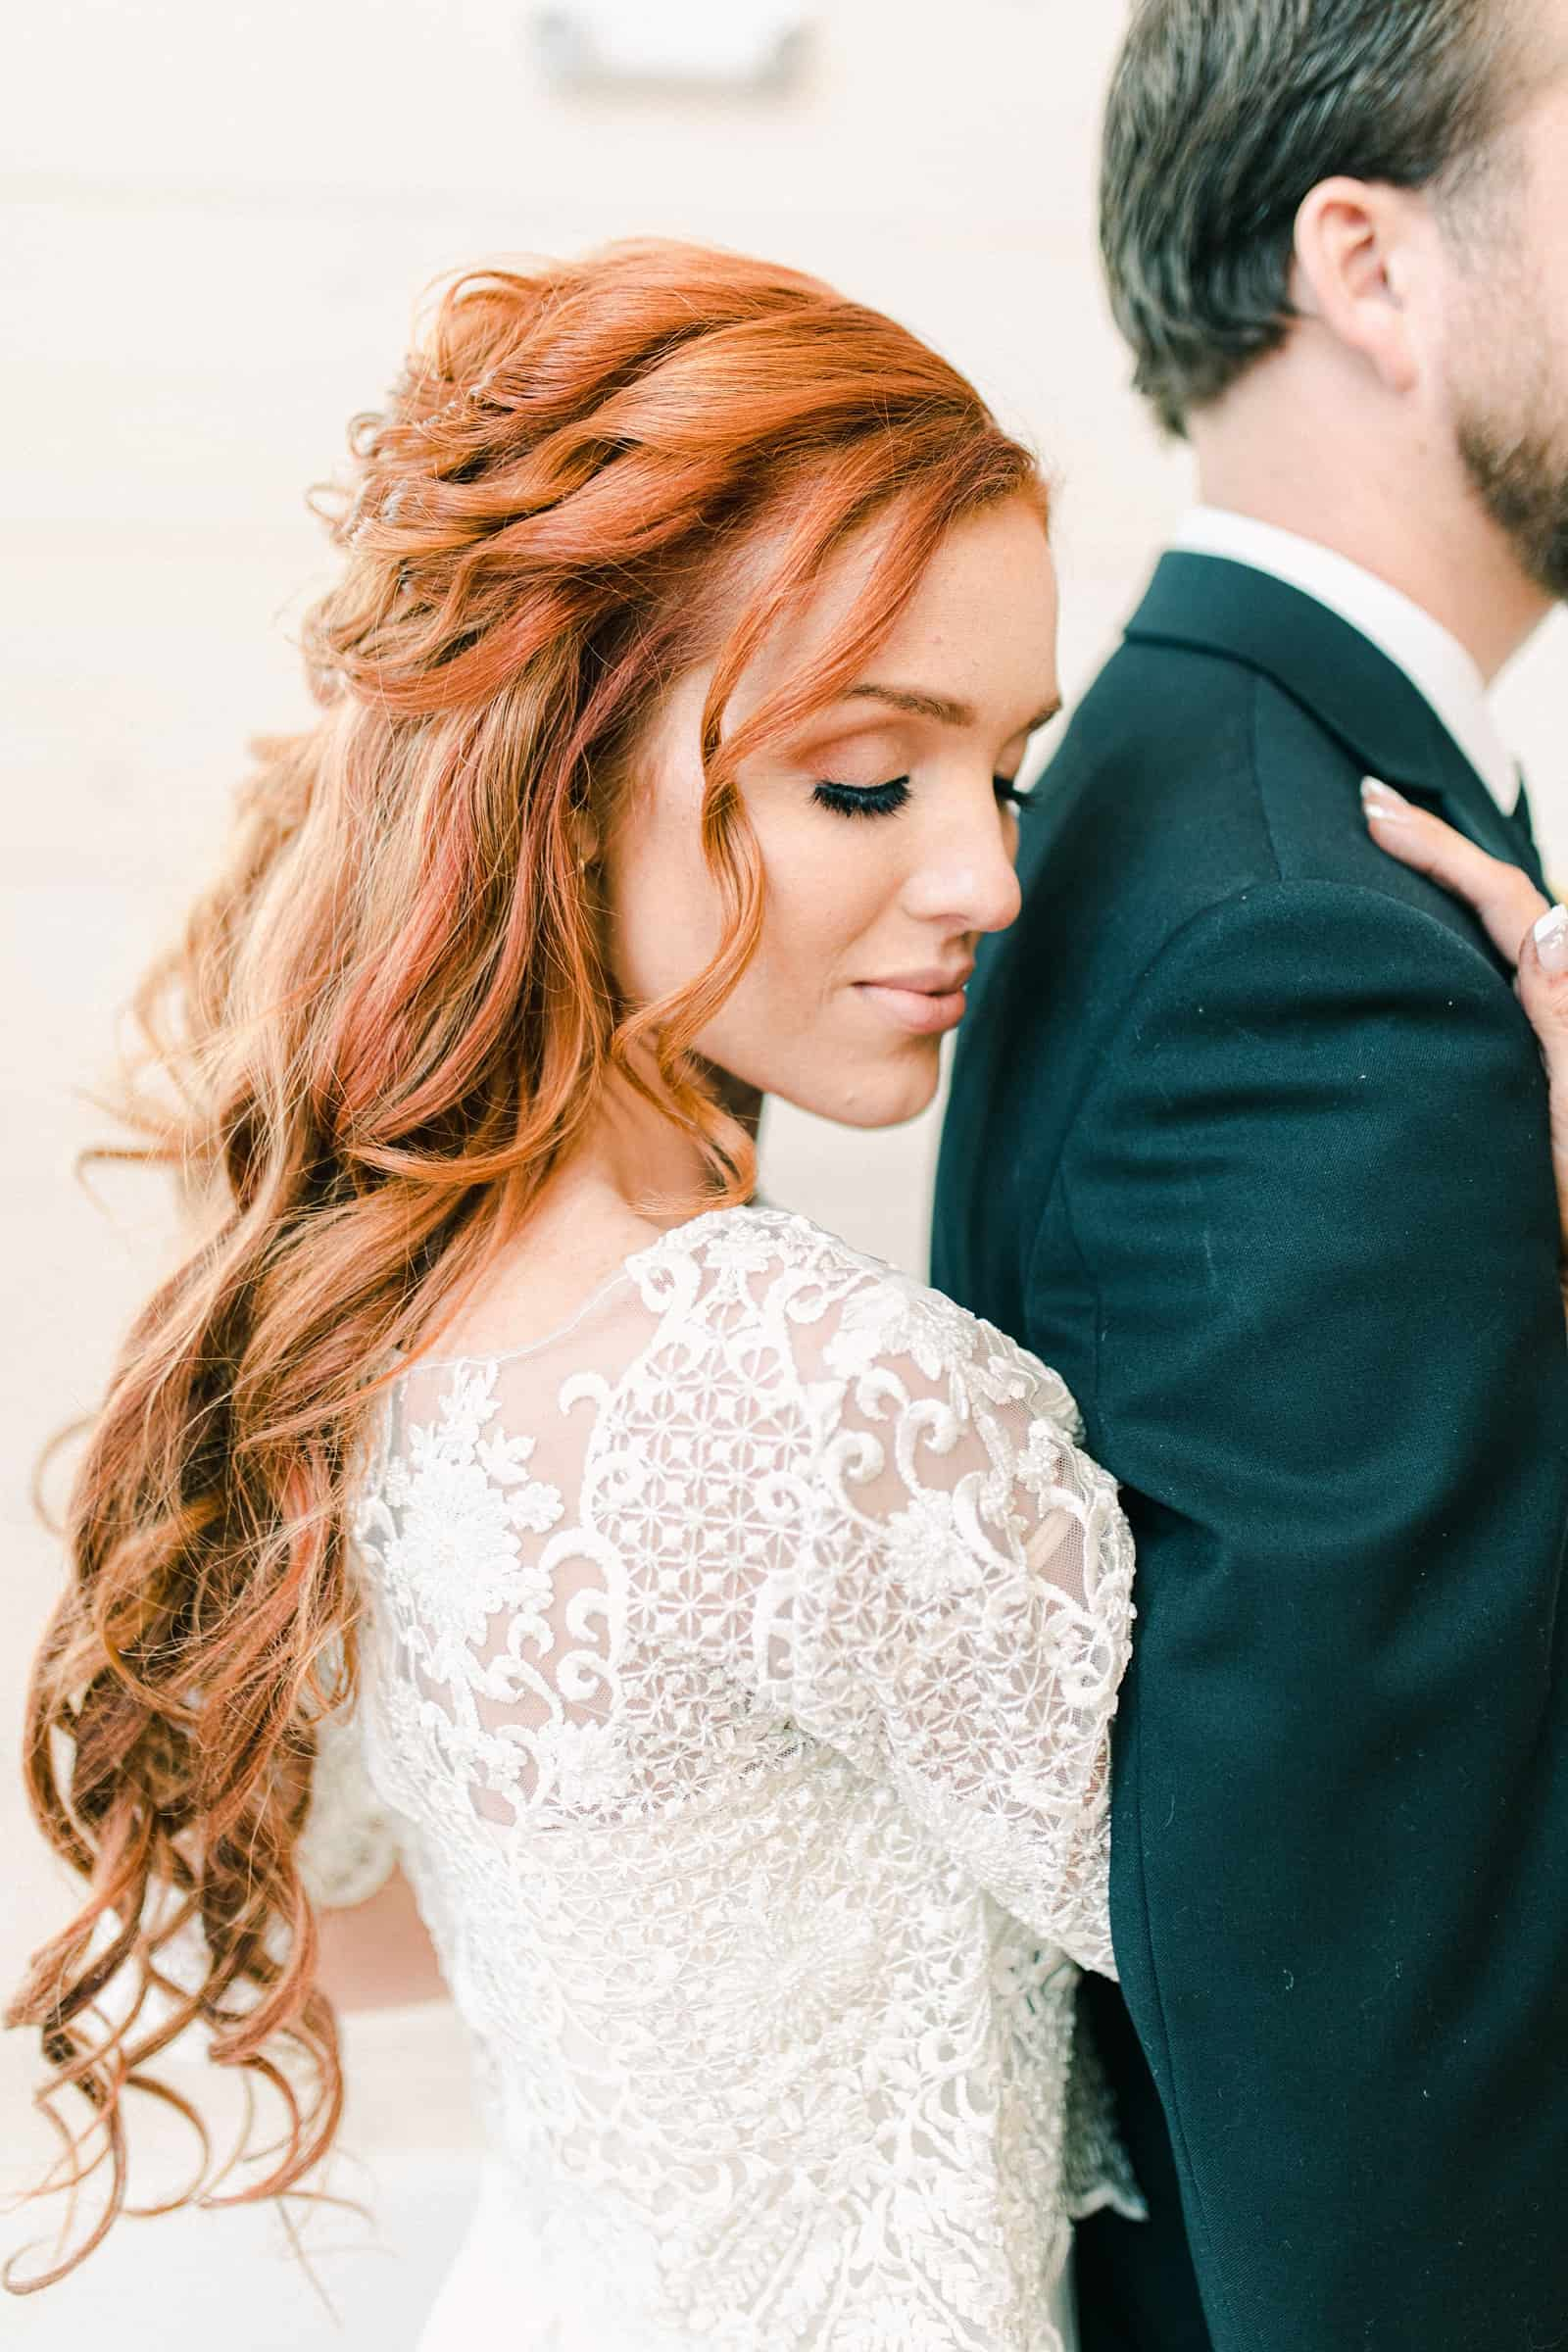 Redhead bride with wedding dress with long lace sleeves, long half up wedding hairstyle, boho bride